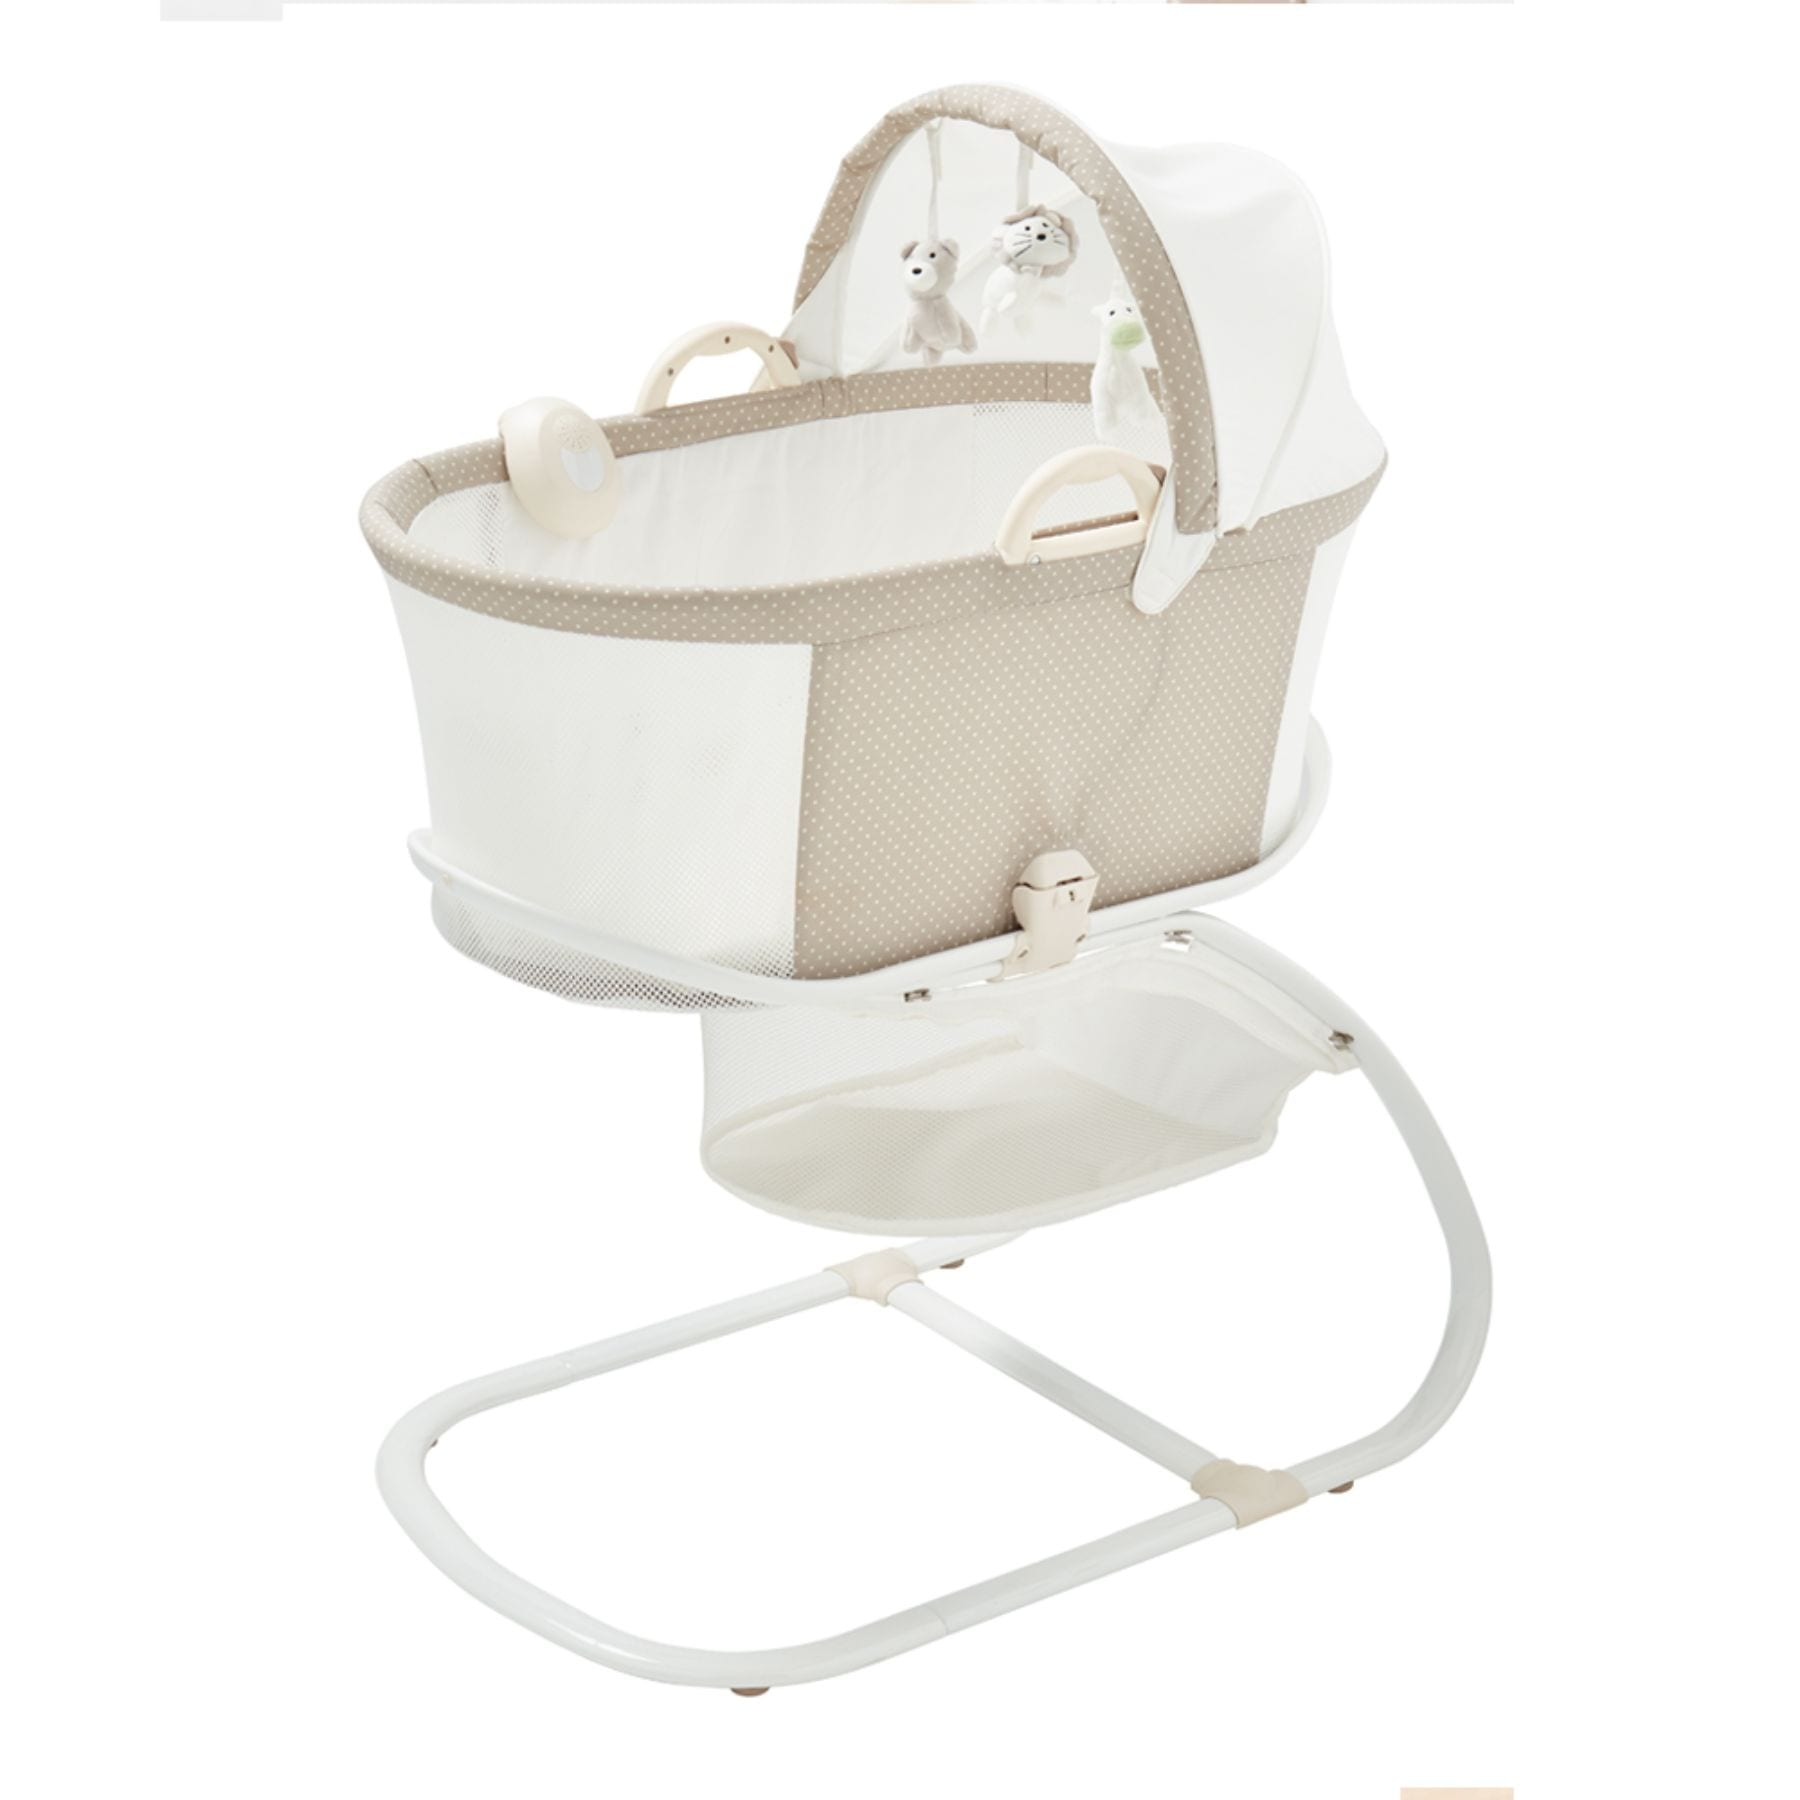 Purflo Breathable Bassinet - Soft Truffle